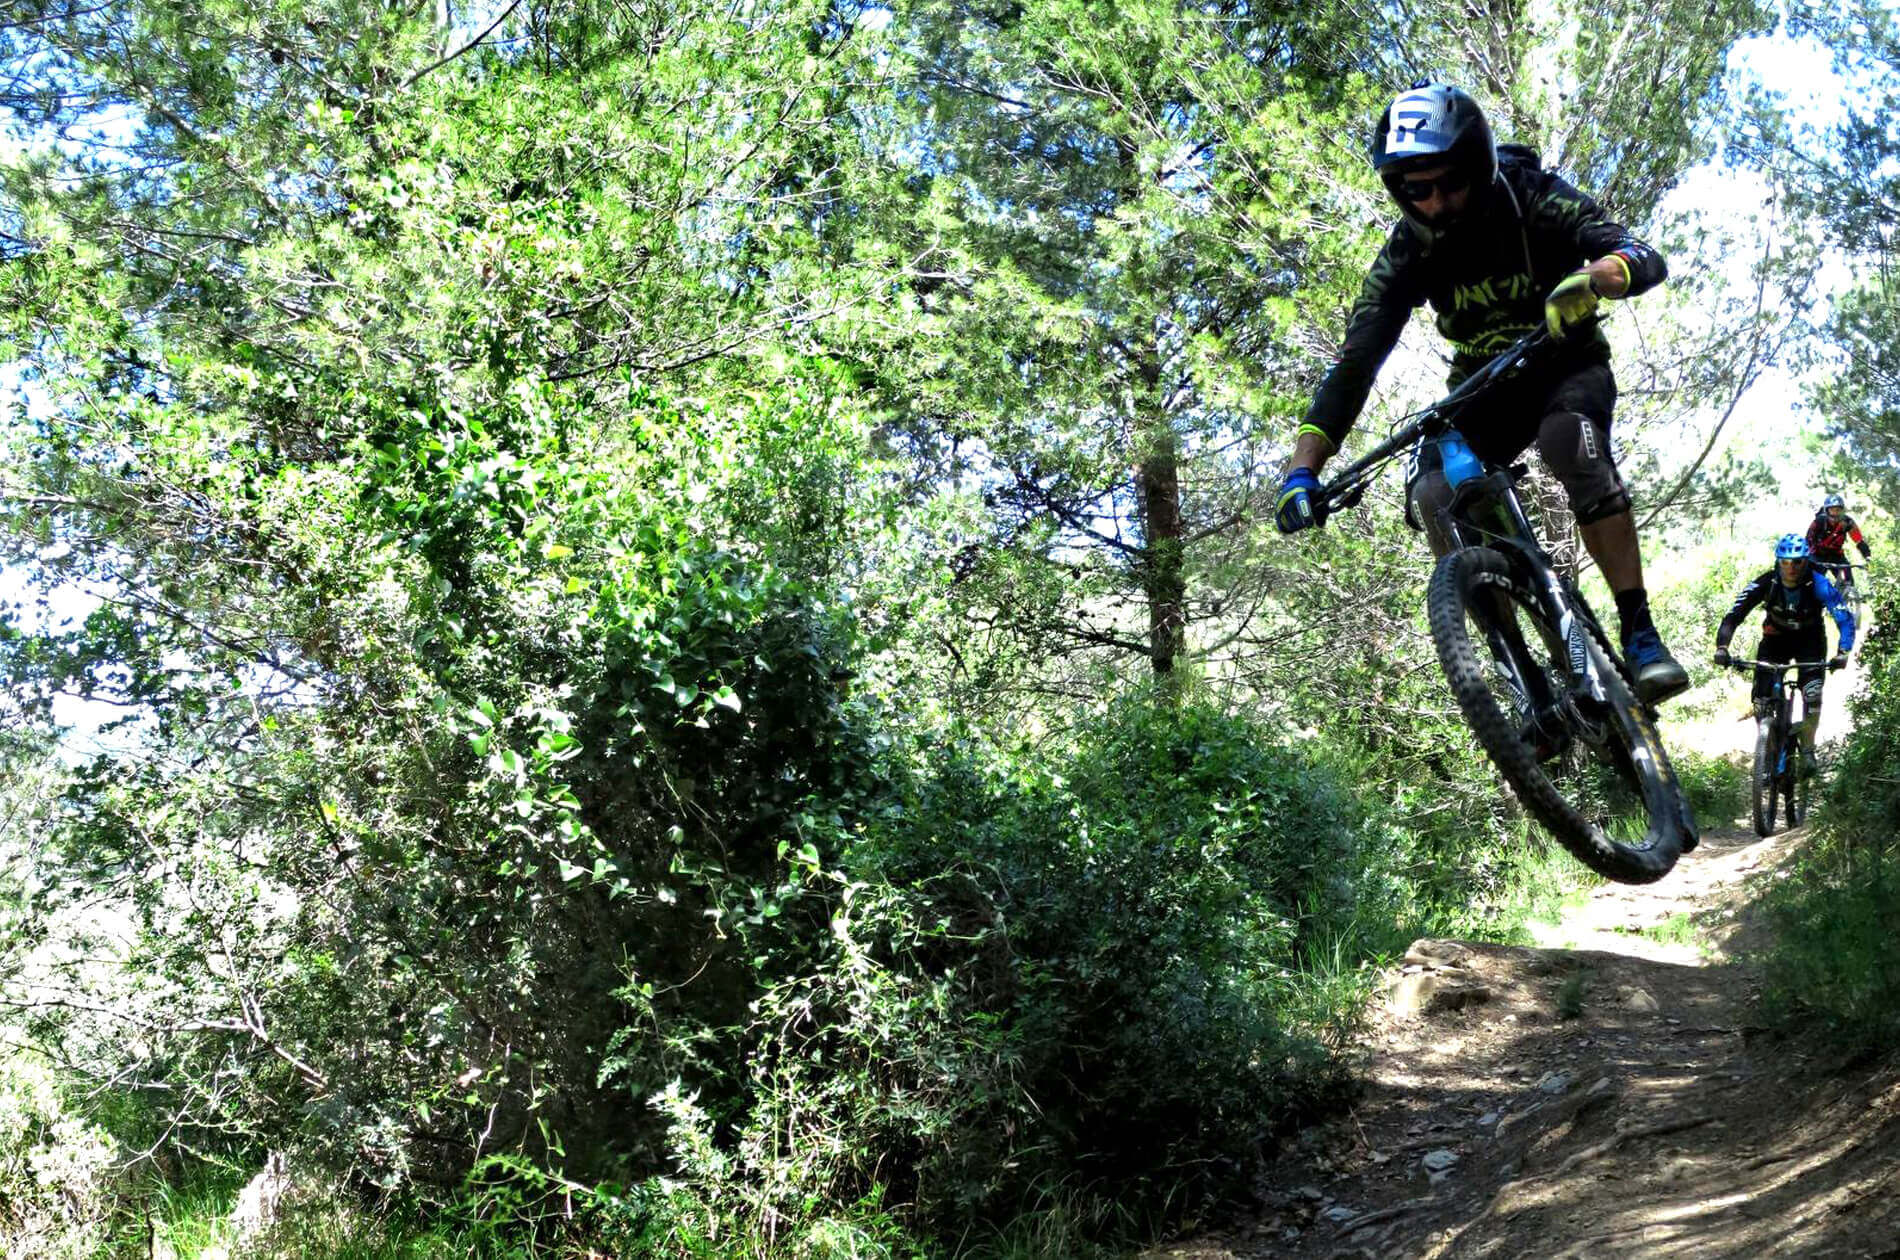 Bikers on mountain bike downhill in the green Ligurian hills